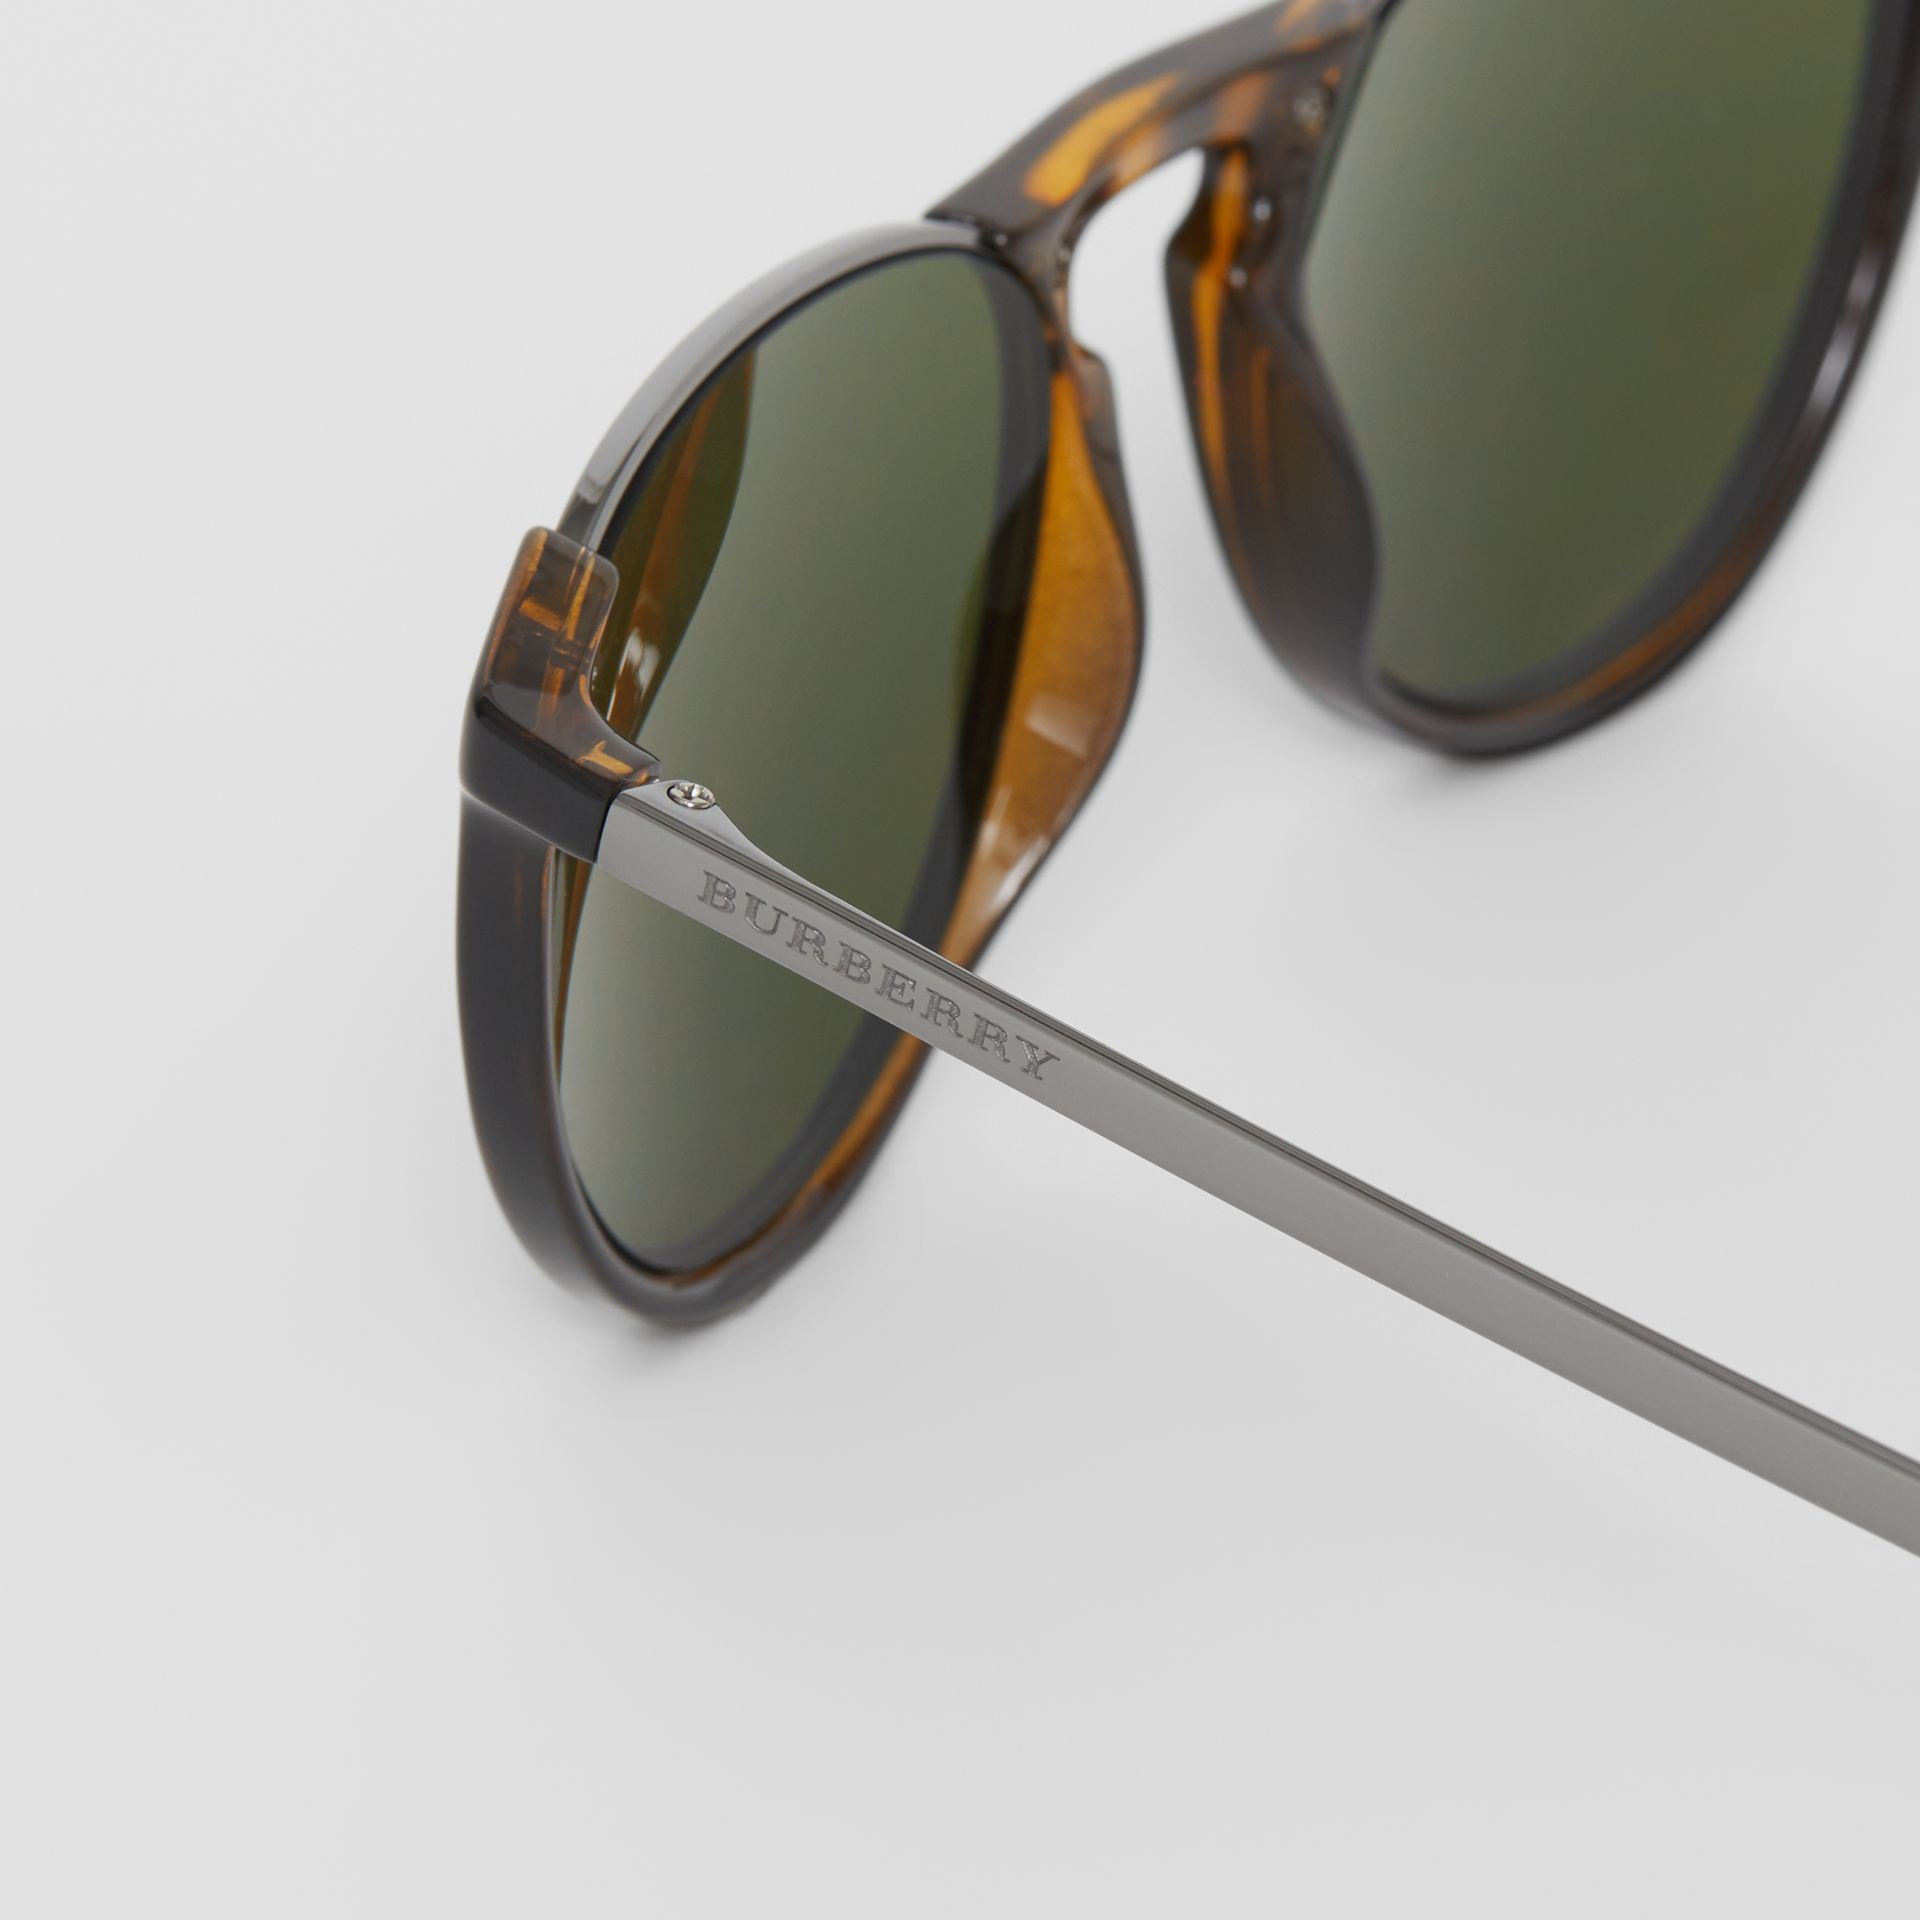 Keyhole Pilot Round Frame Sunglasses in Tortoise Shell - Men | Burberry United Kingdom - gallery image 1